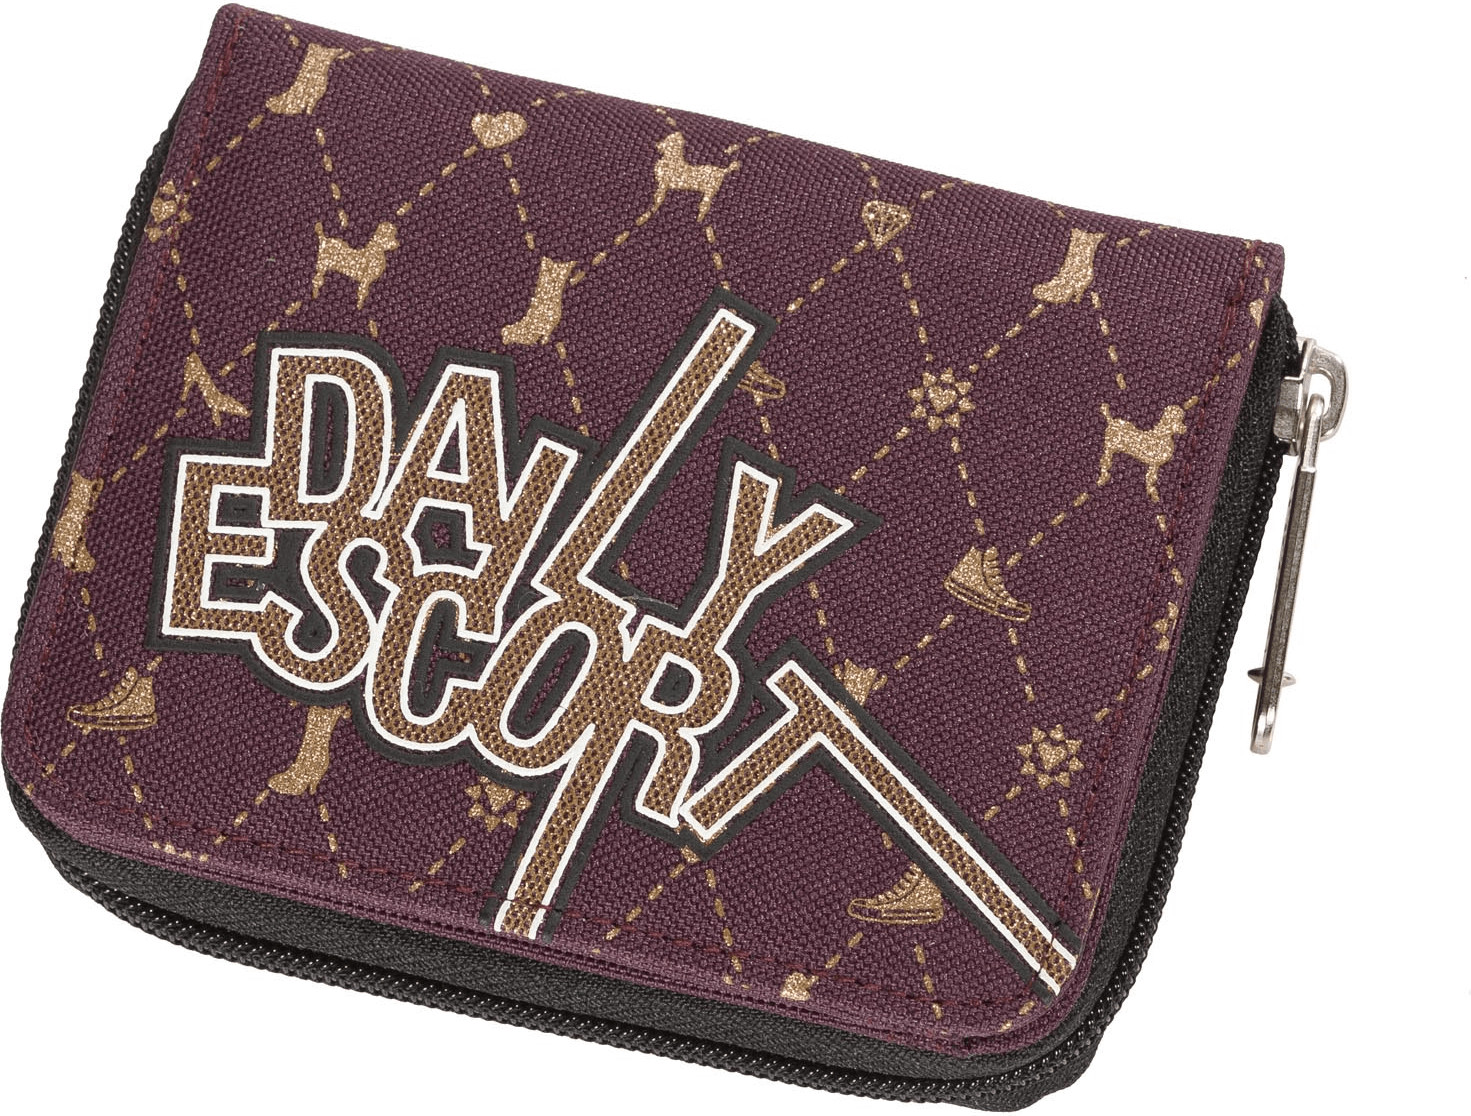 4YOU Basic Zipper Wallet daily escort